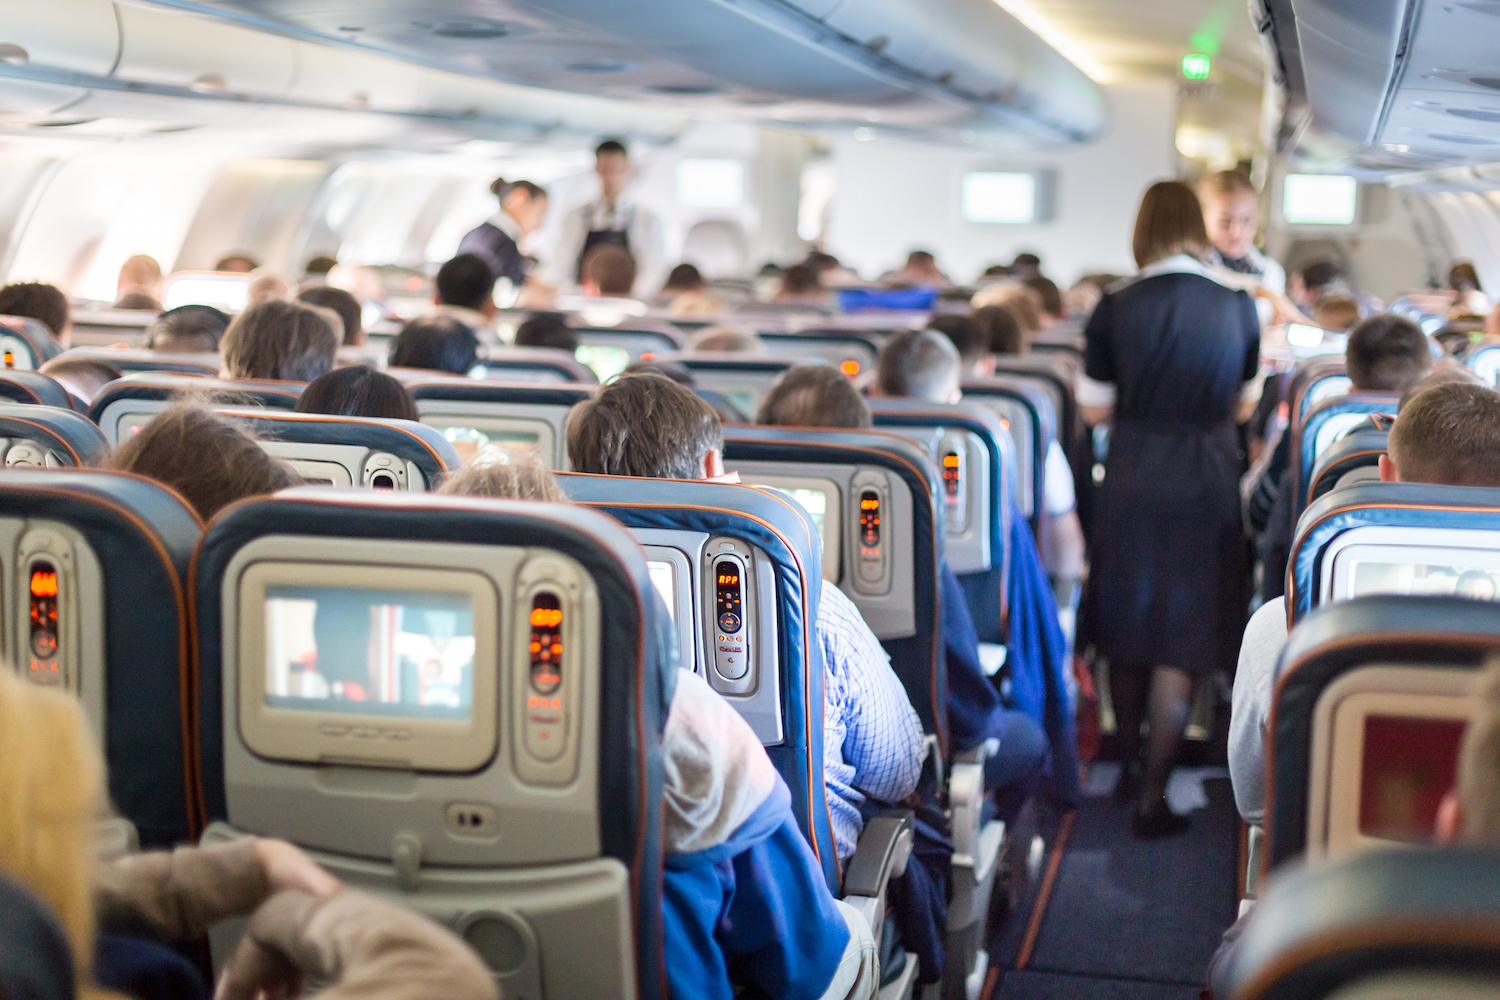 A new study conducted by researchers from Georgia Tech and Emory University found that airplanes contain the same kinds of microbiomes, or communities of bacteria, that are found in homes and offices.